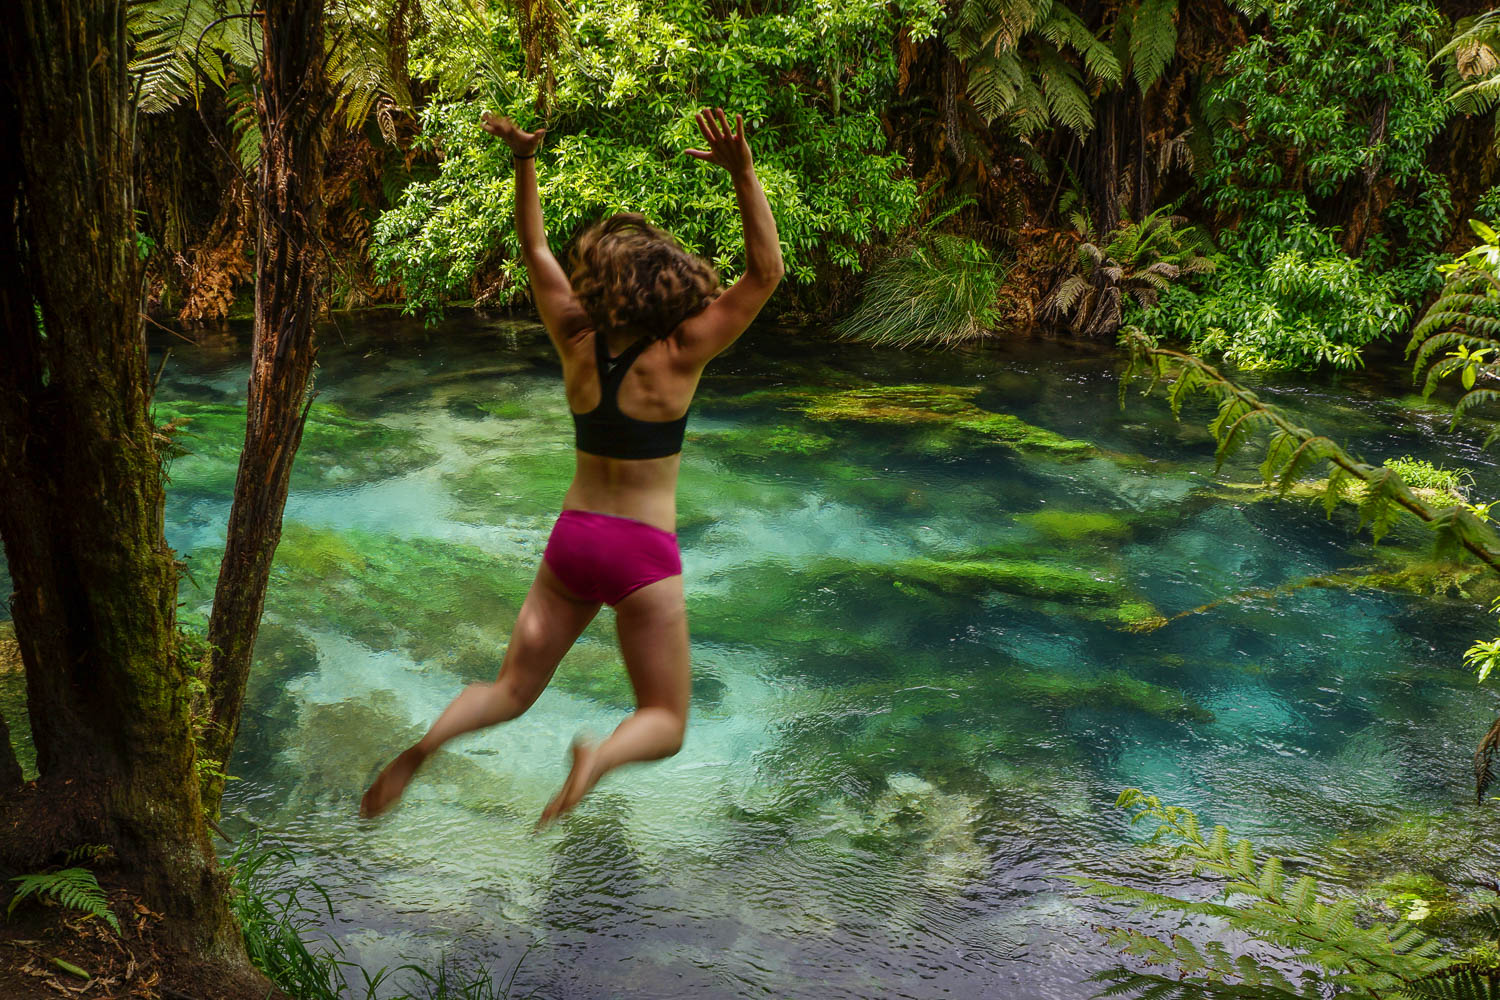 Except for that one time I jumped in Blue Spring with 11 degree water and immediately regretted it.